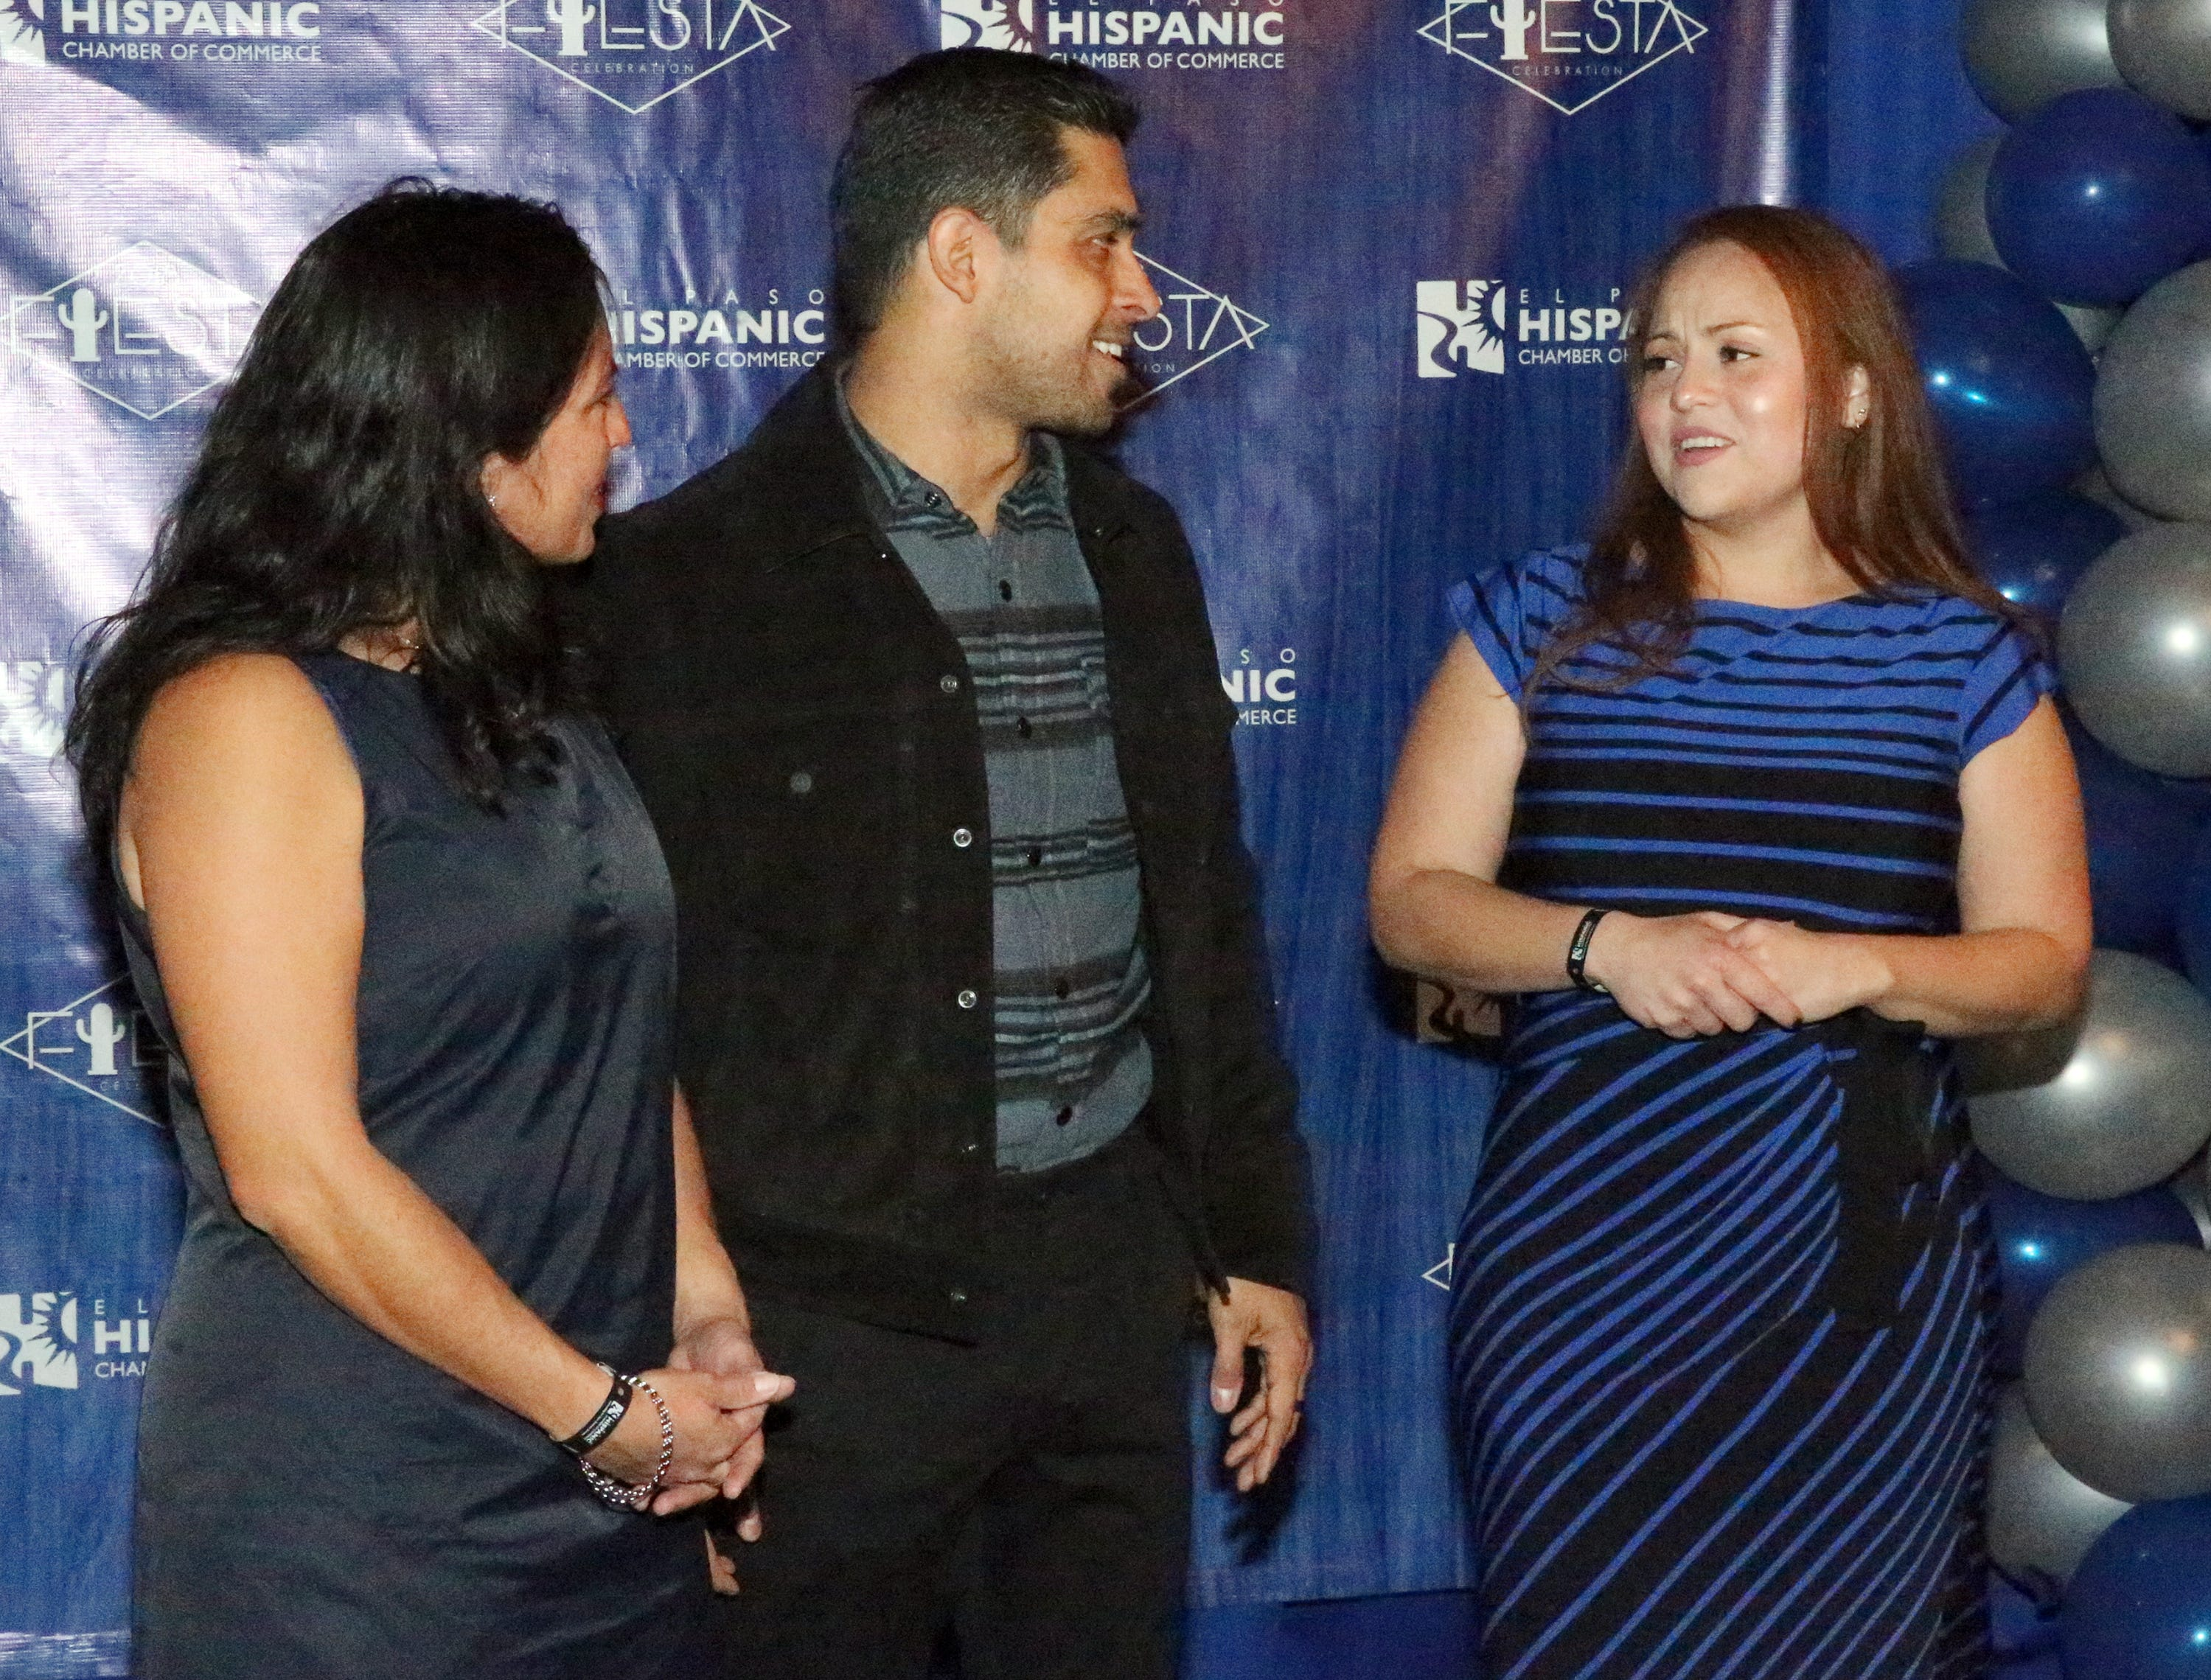 Actor/producer Wilmer Valderrama, center, talks with Alina Gonzalez, right, and Yesenia Castro, left, during a reception at the 28th El Paso Hispanic Chamber of Commerce annual Fiesta Celebration Saturday night at the Centennial Banquet and Conference Center at Fort Bliss.